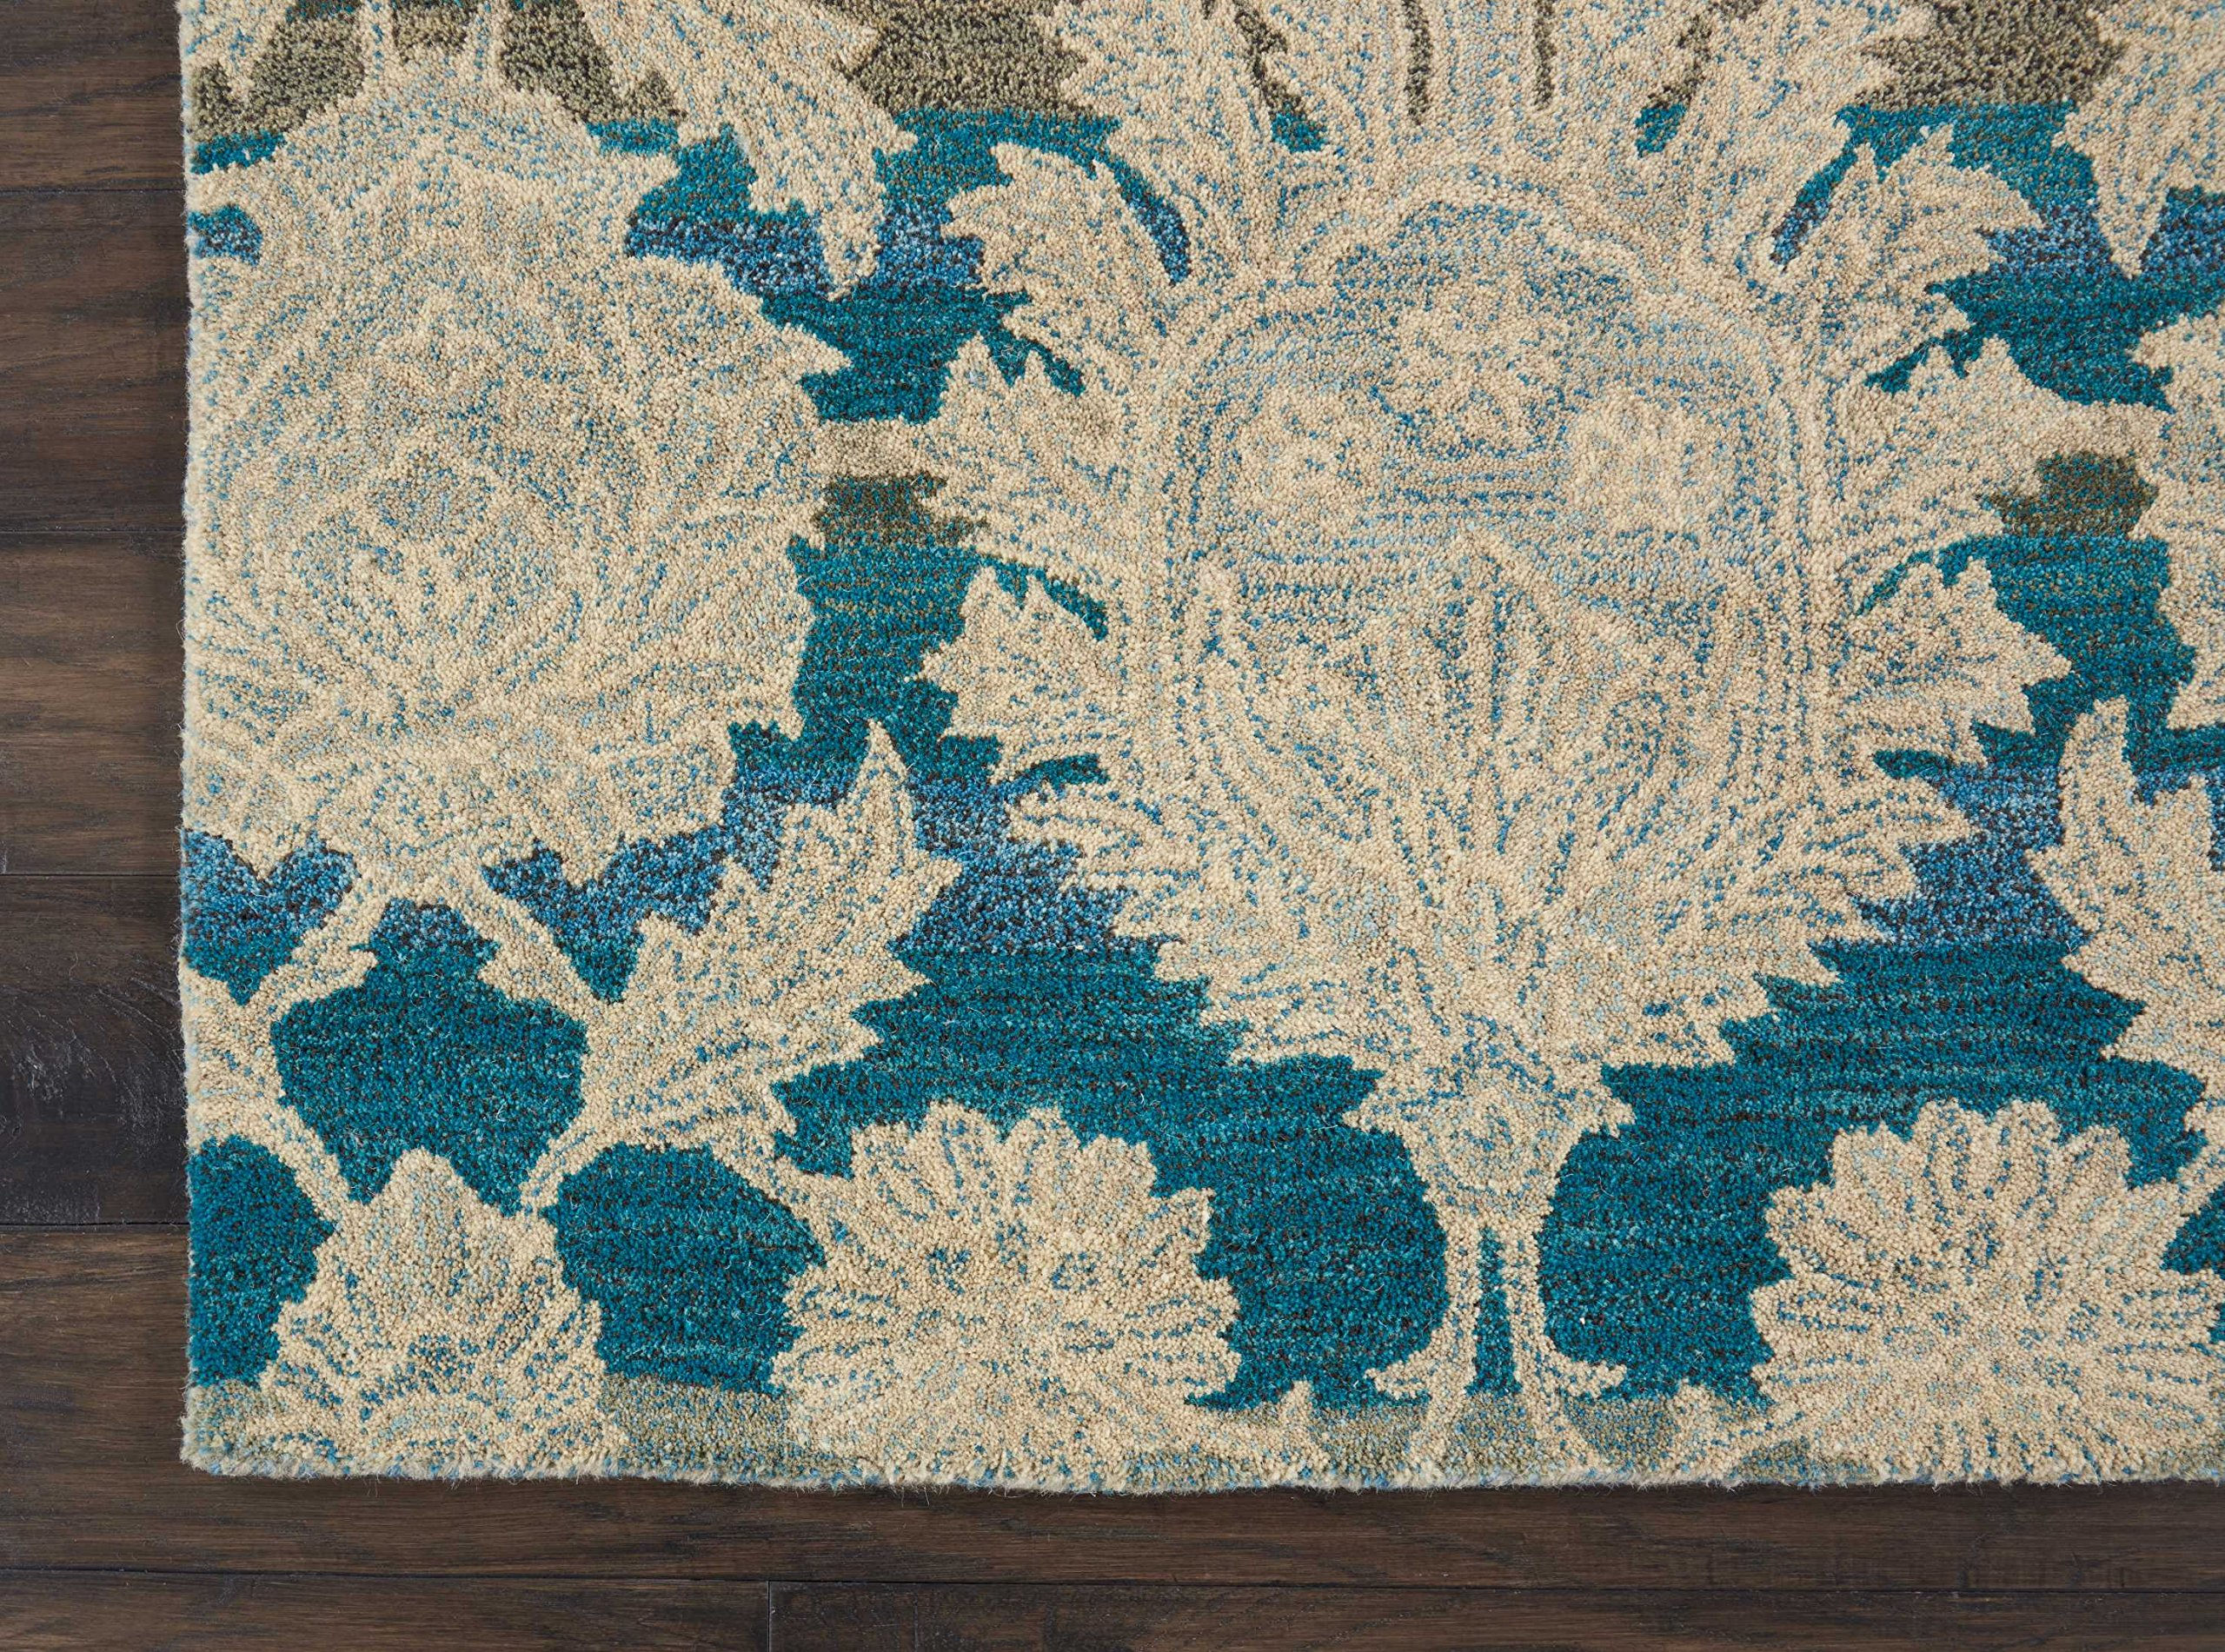 Nourison IH91 India House Area Rug, 8'X10'6'', IVORY/TEAL by Nourison (Image #4)